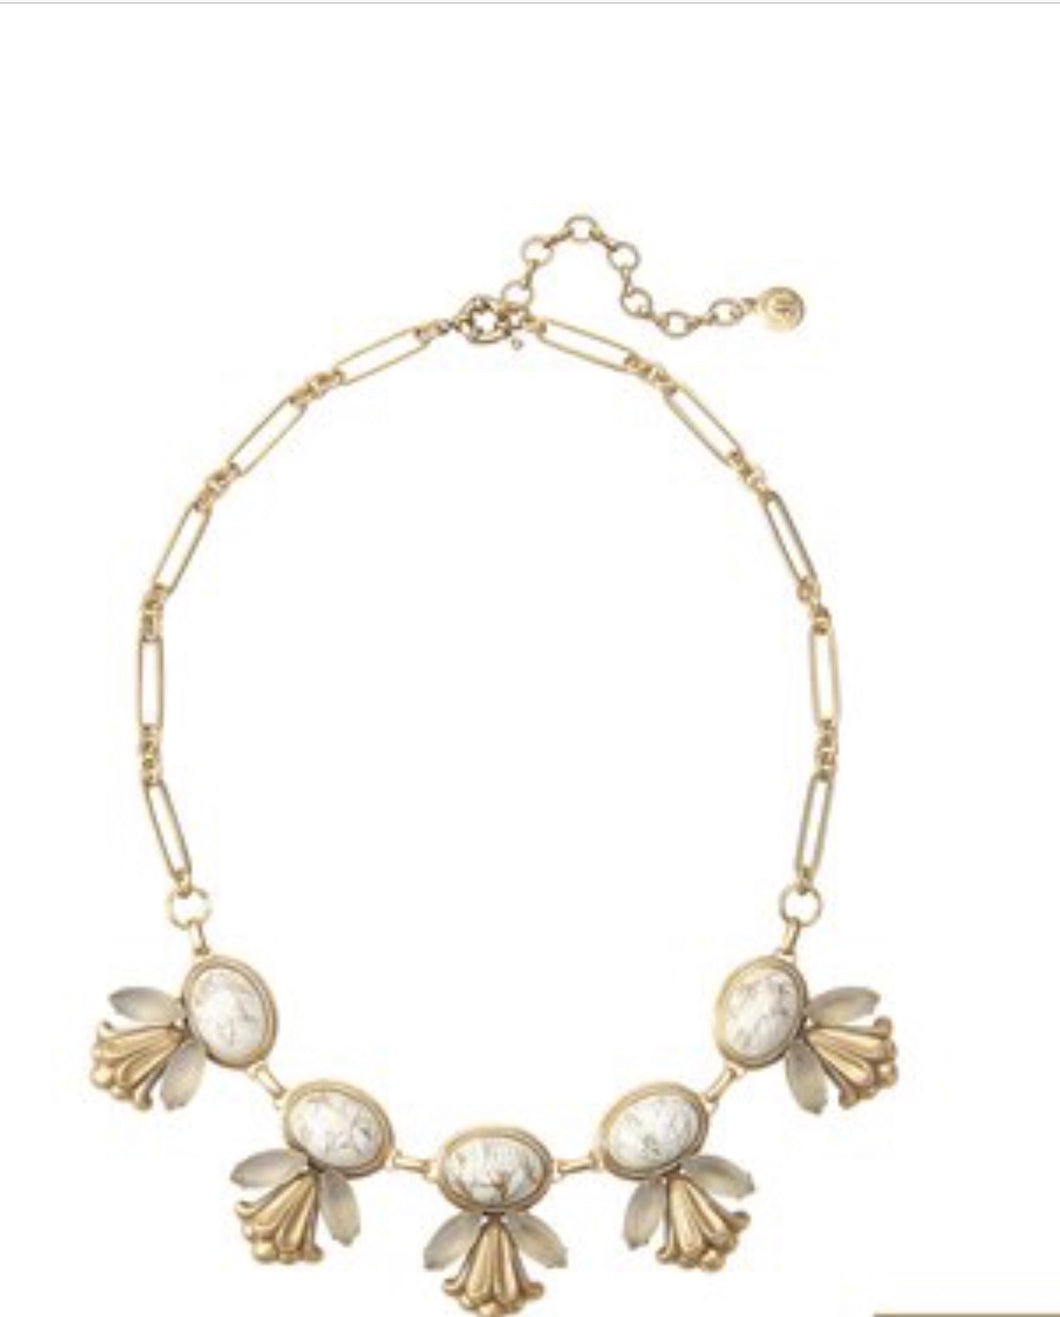 Emily Statement Necklace in White by Lilli Dokken - The Jewelers Lebanon